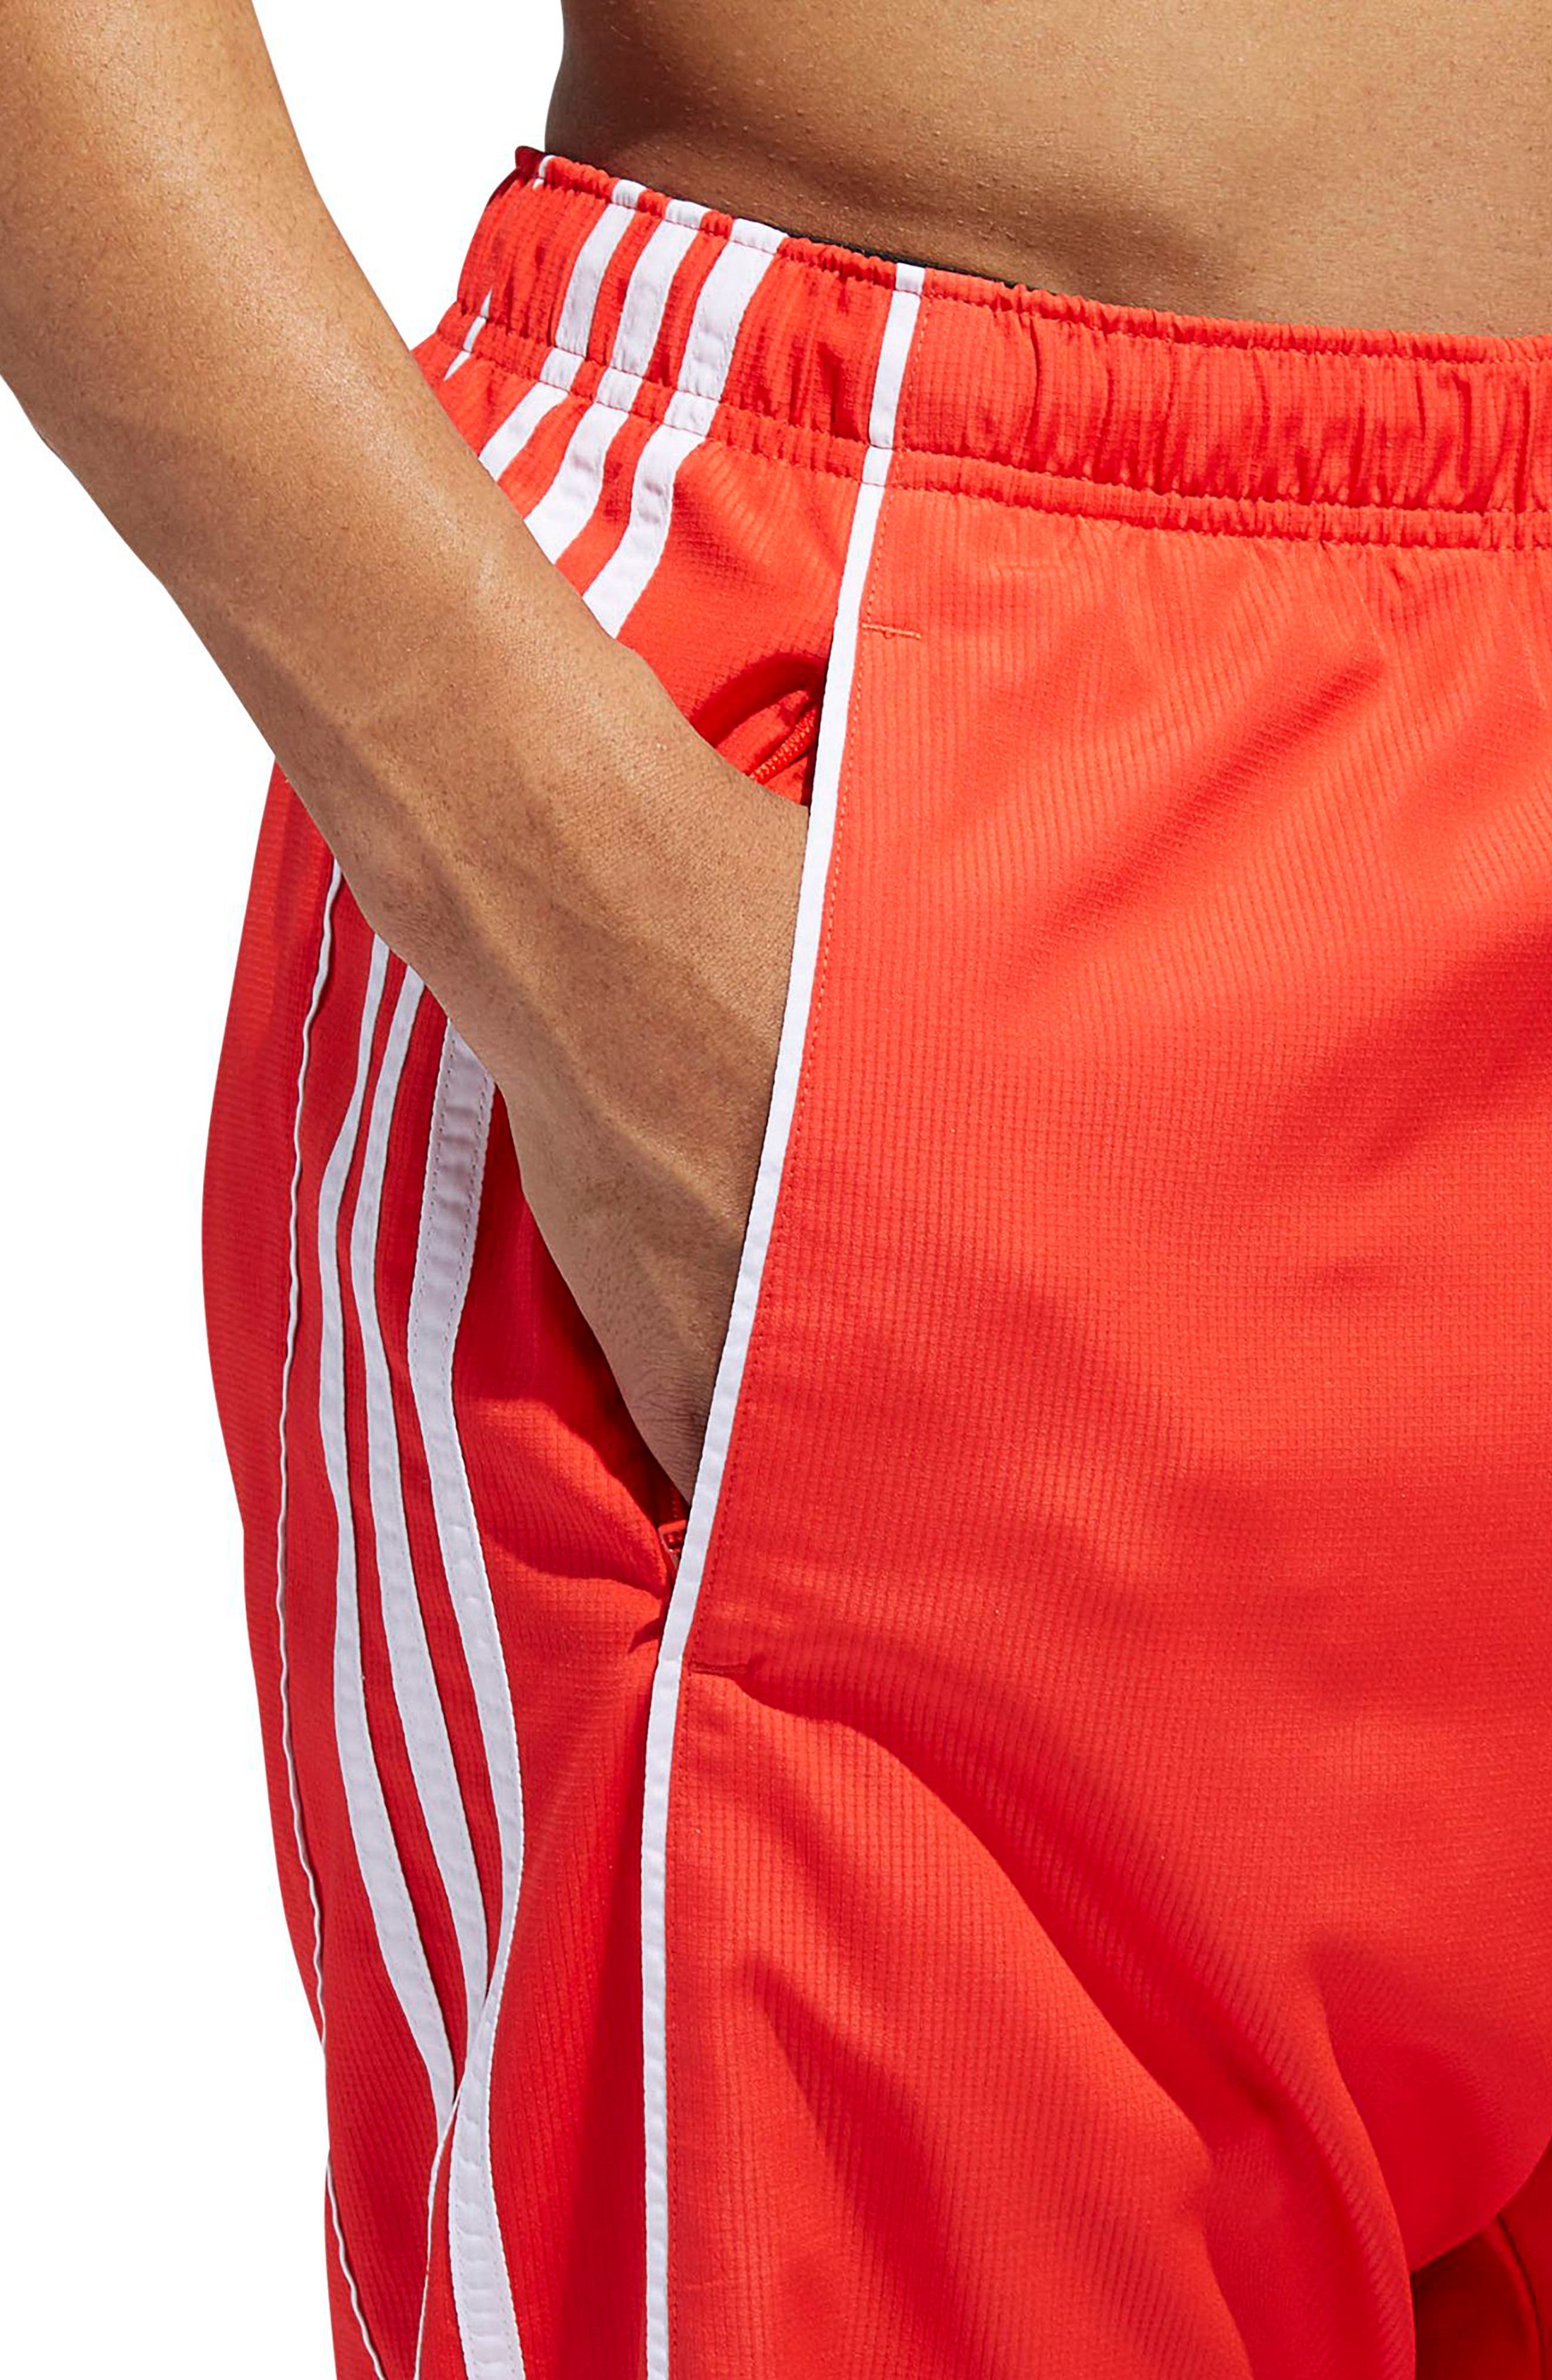 Authentics Ripstop Track Pants,                             Alternate thumbnail 5, color,                             HI-RES RED/ WHITE